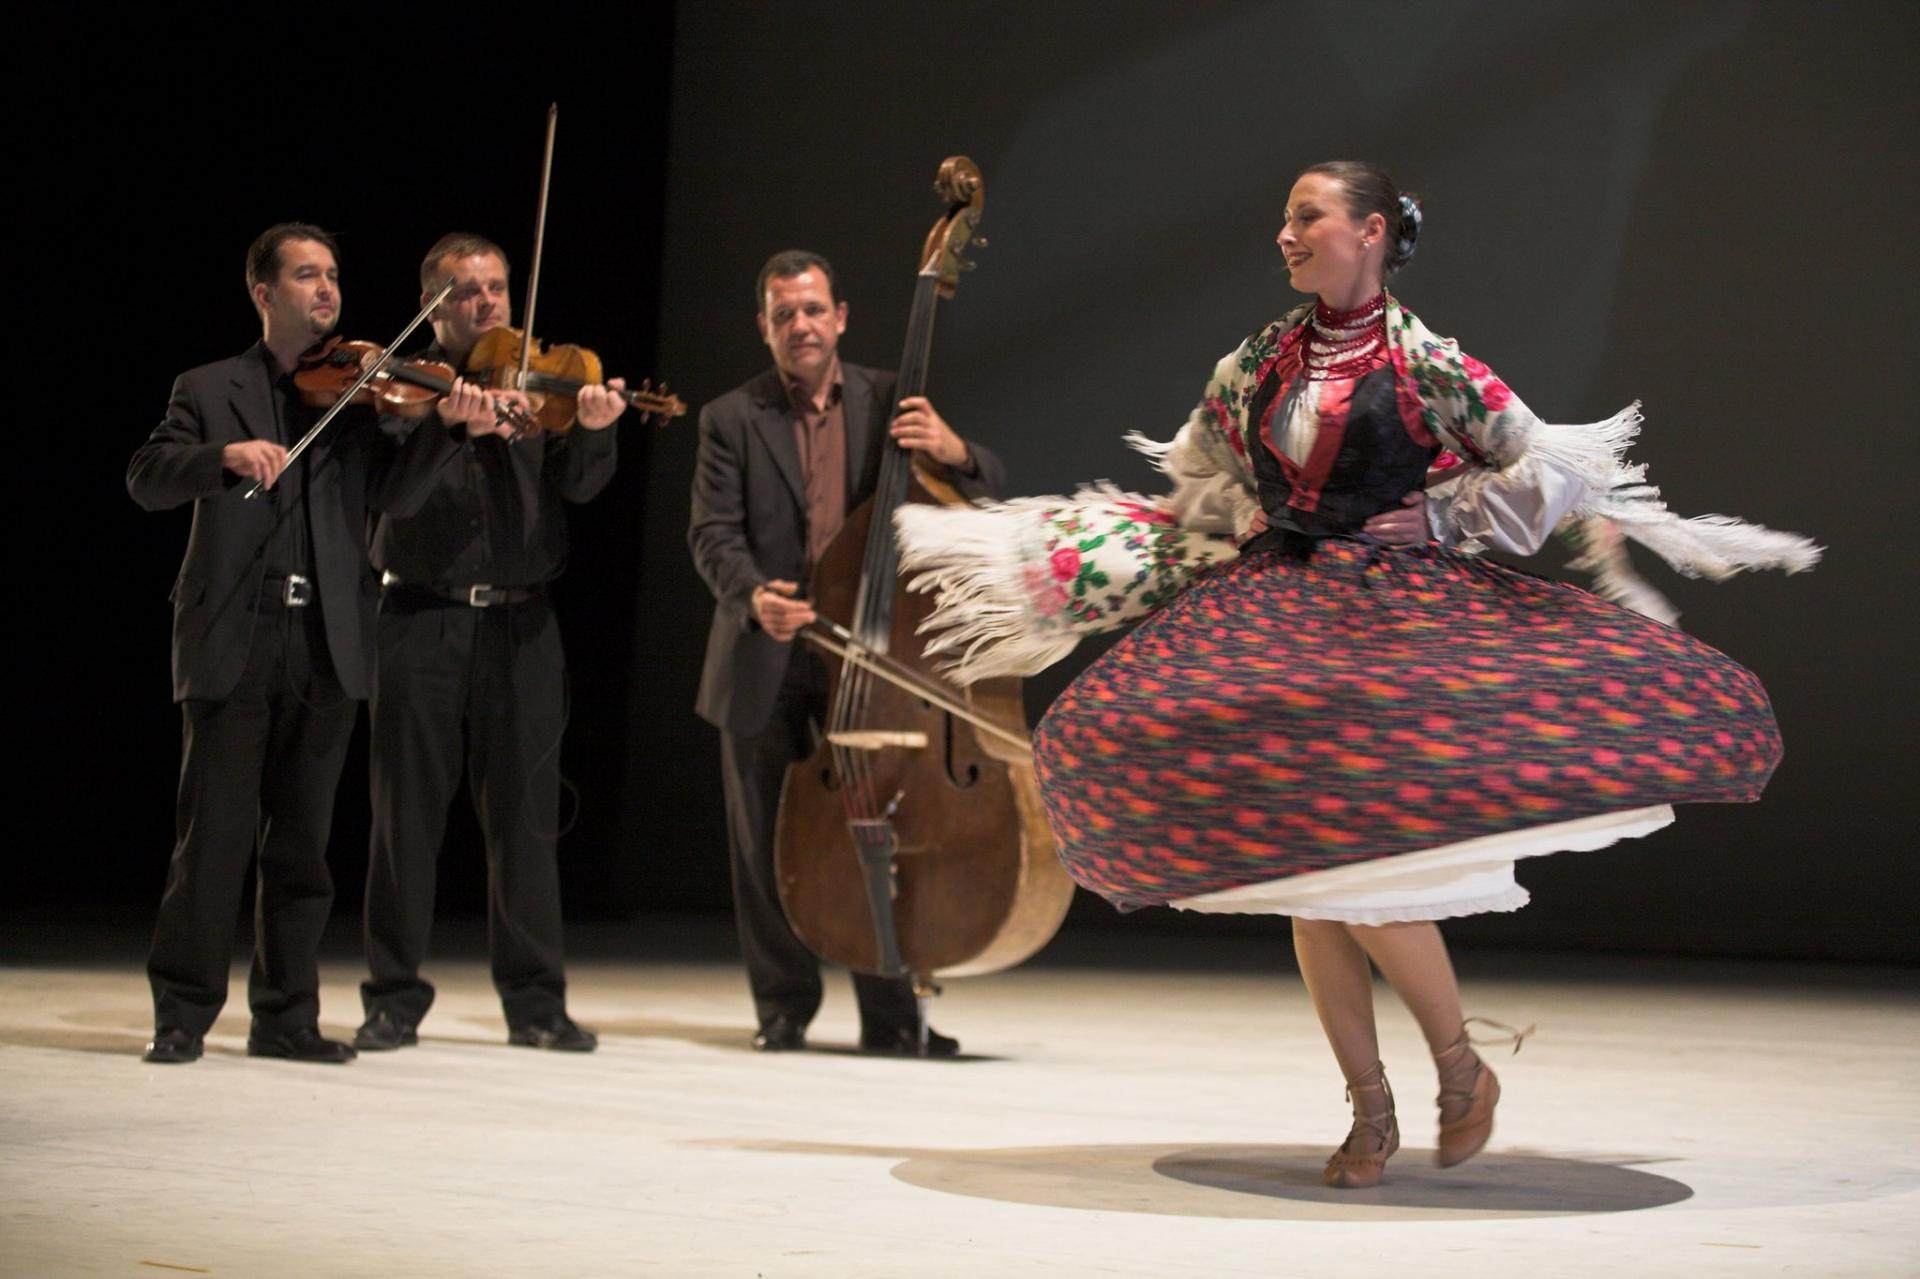 Hungarian Dance Performance + Drink & Cruise